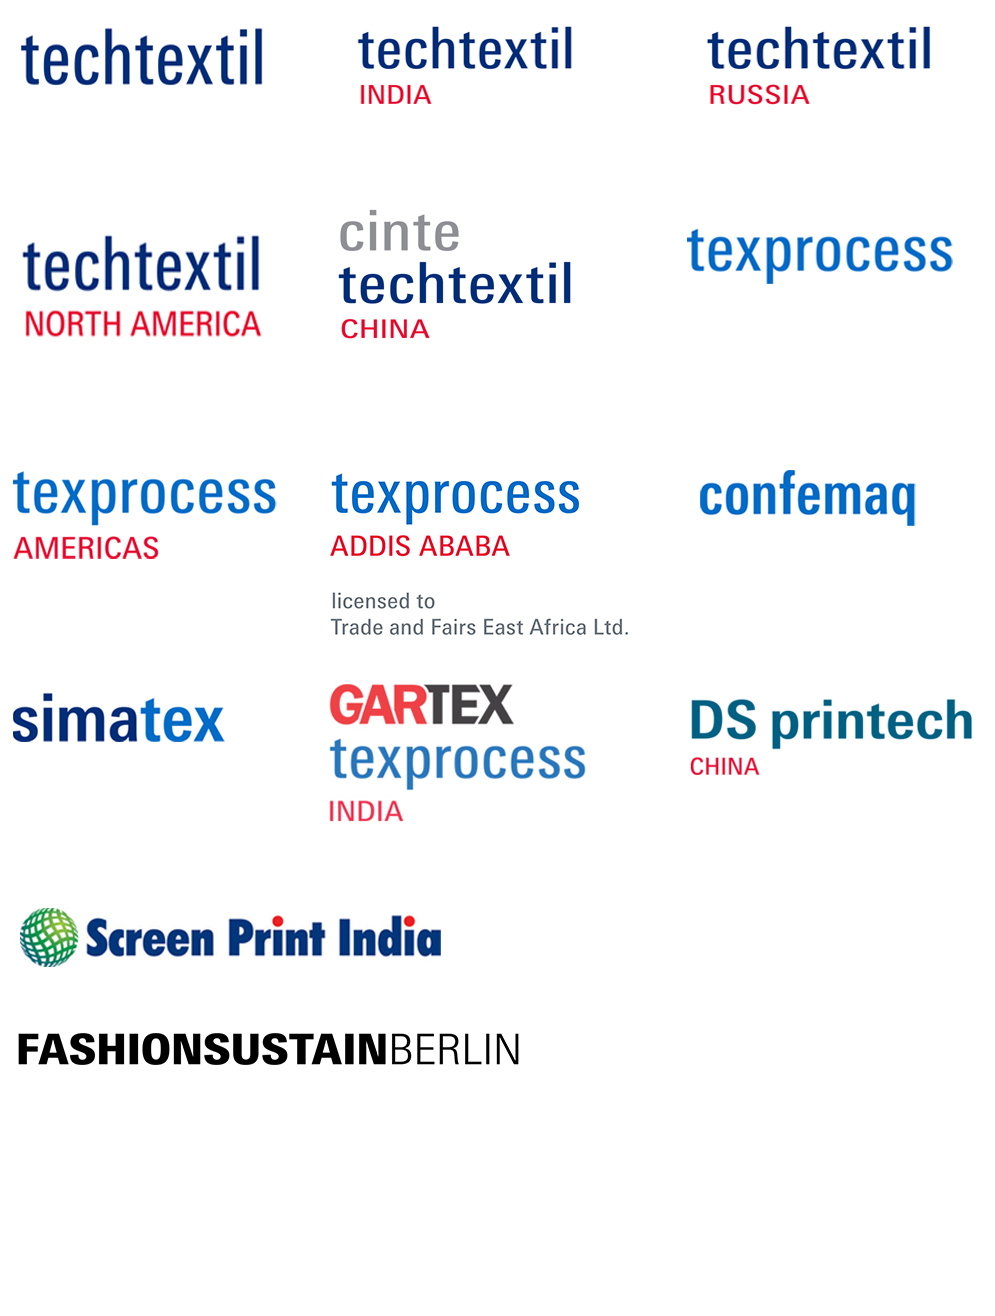 All technical textiles exhibitions